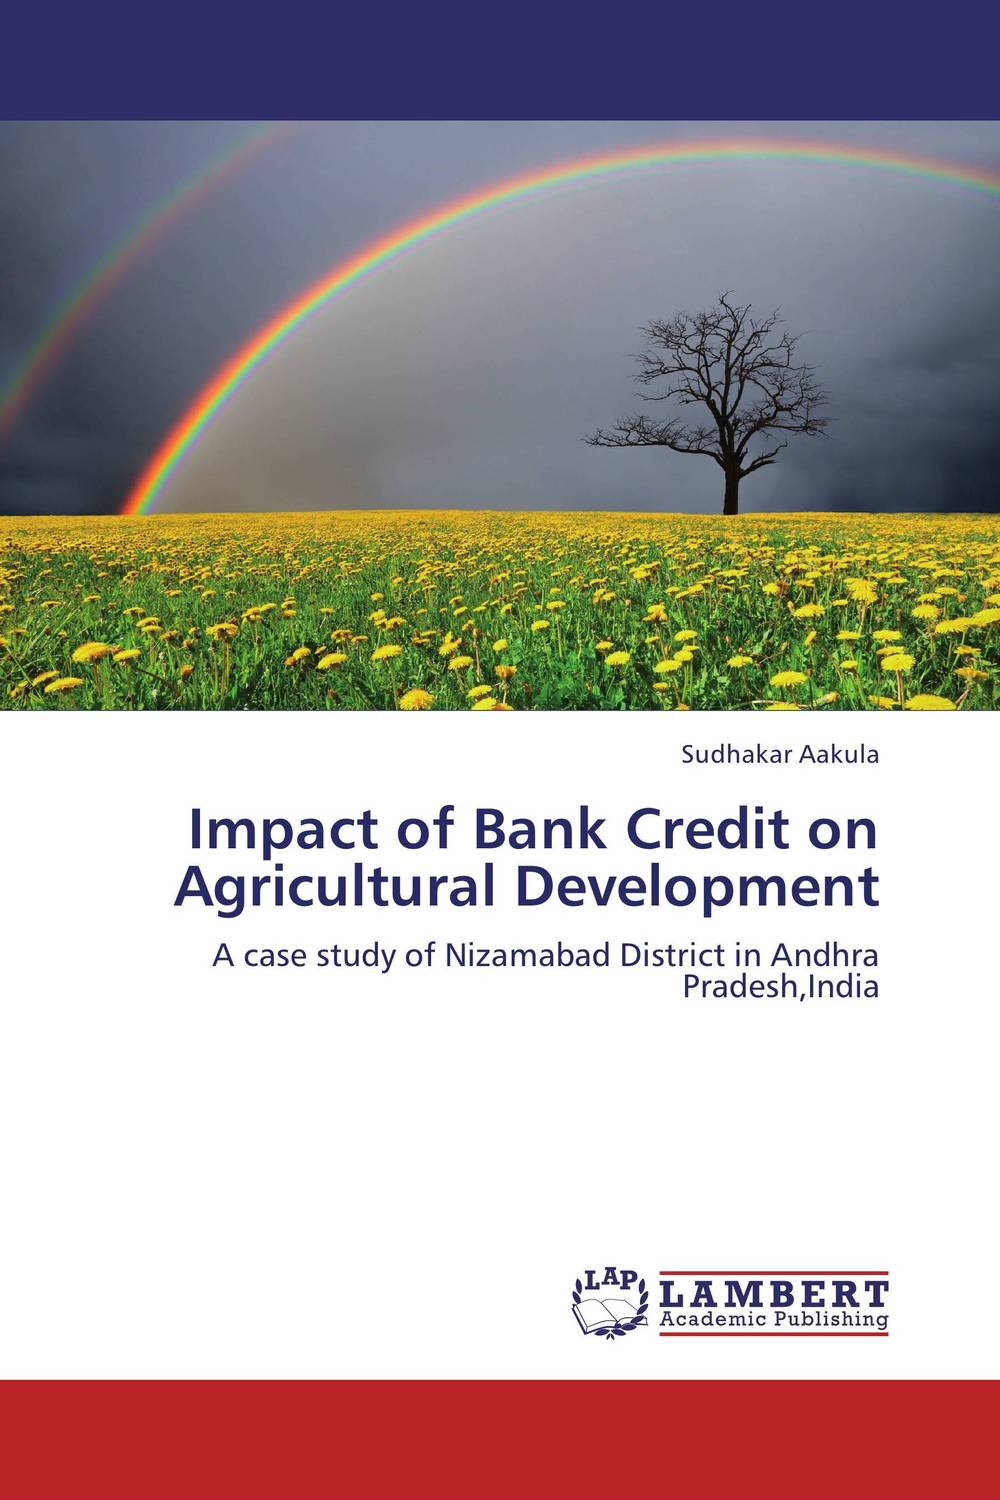 Impact of Bank Credit on Agricultural Development credit derivatives and credit rating